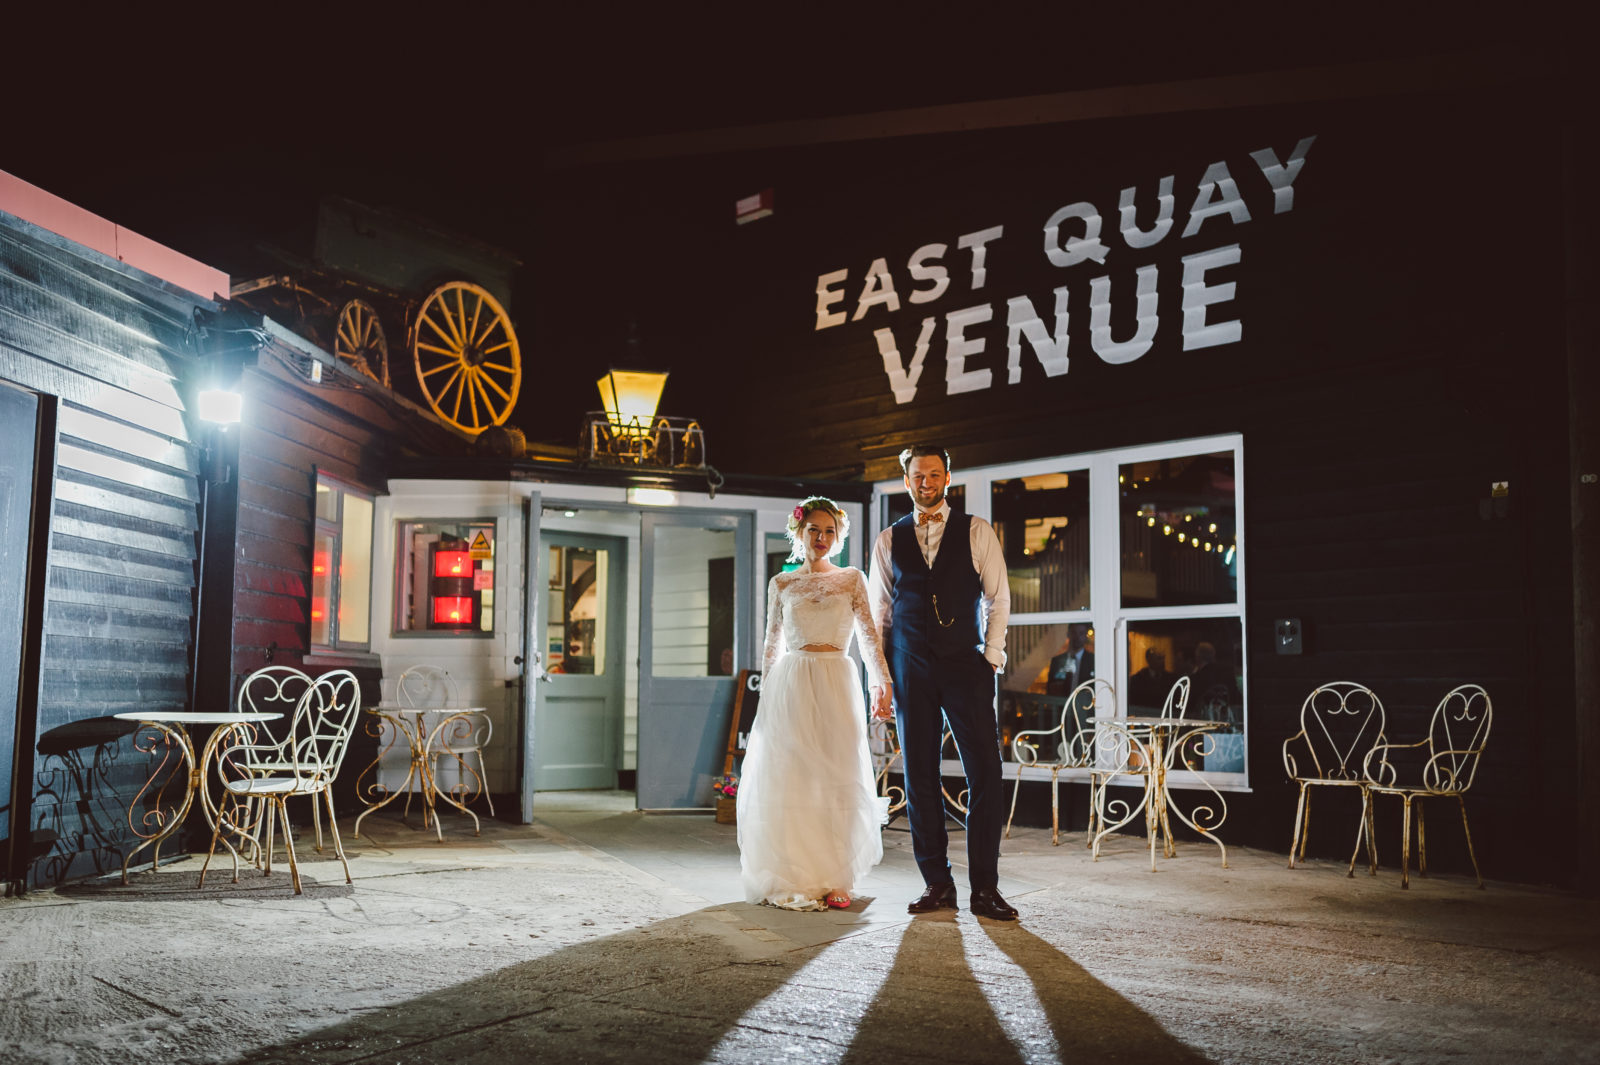 East Quay Venue at night with cool bride and groom